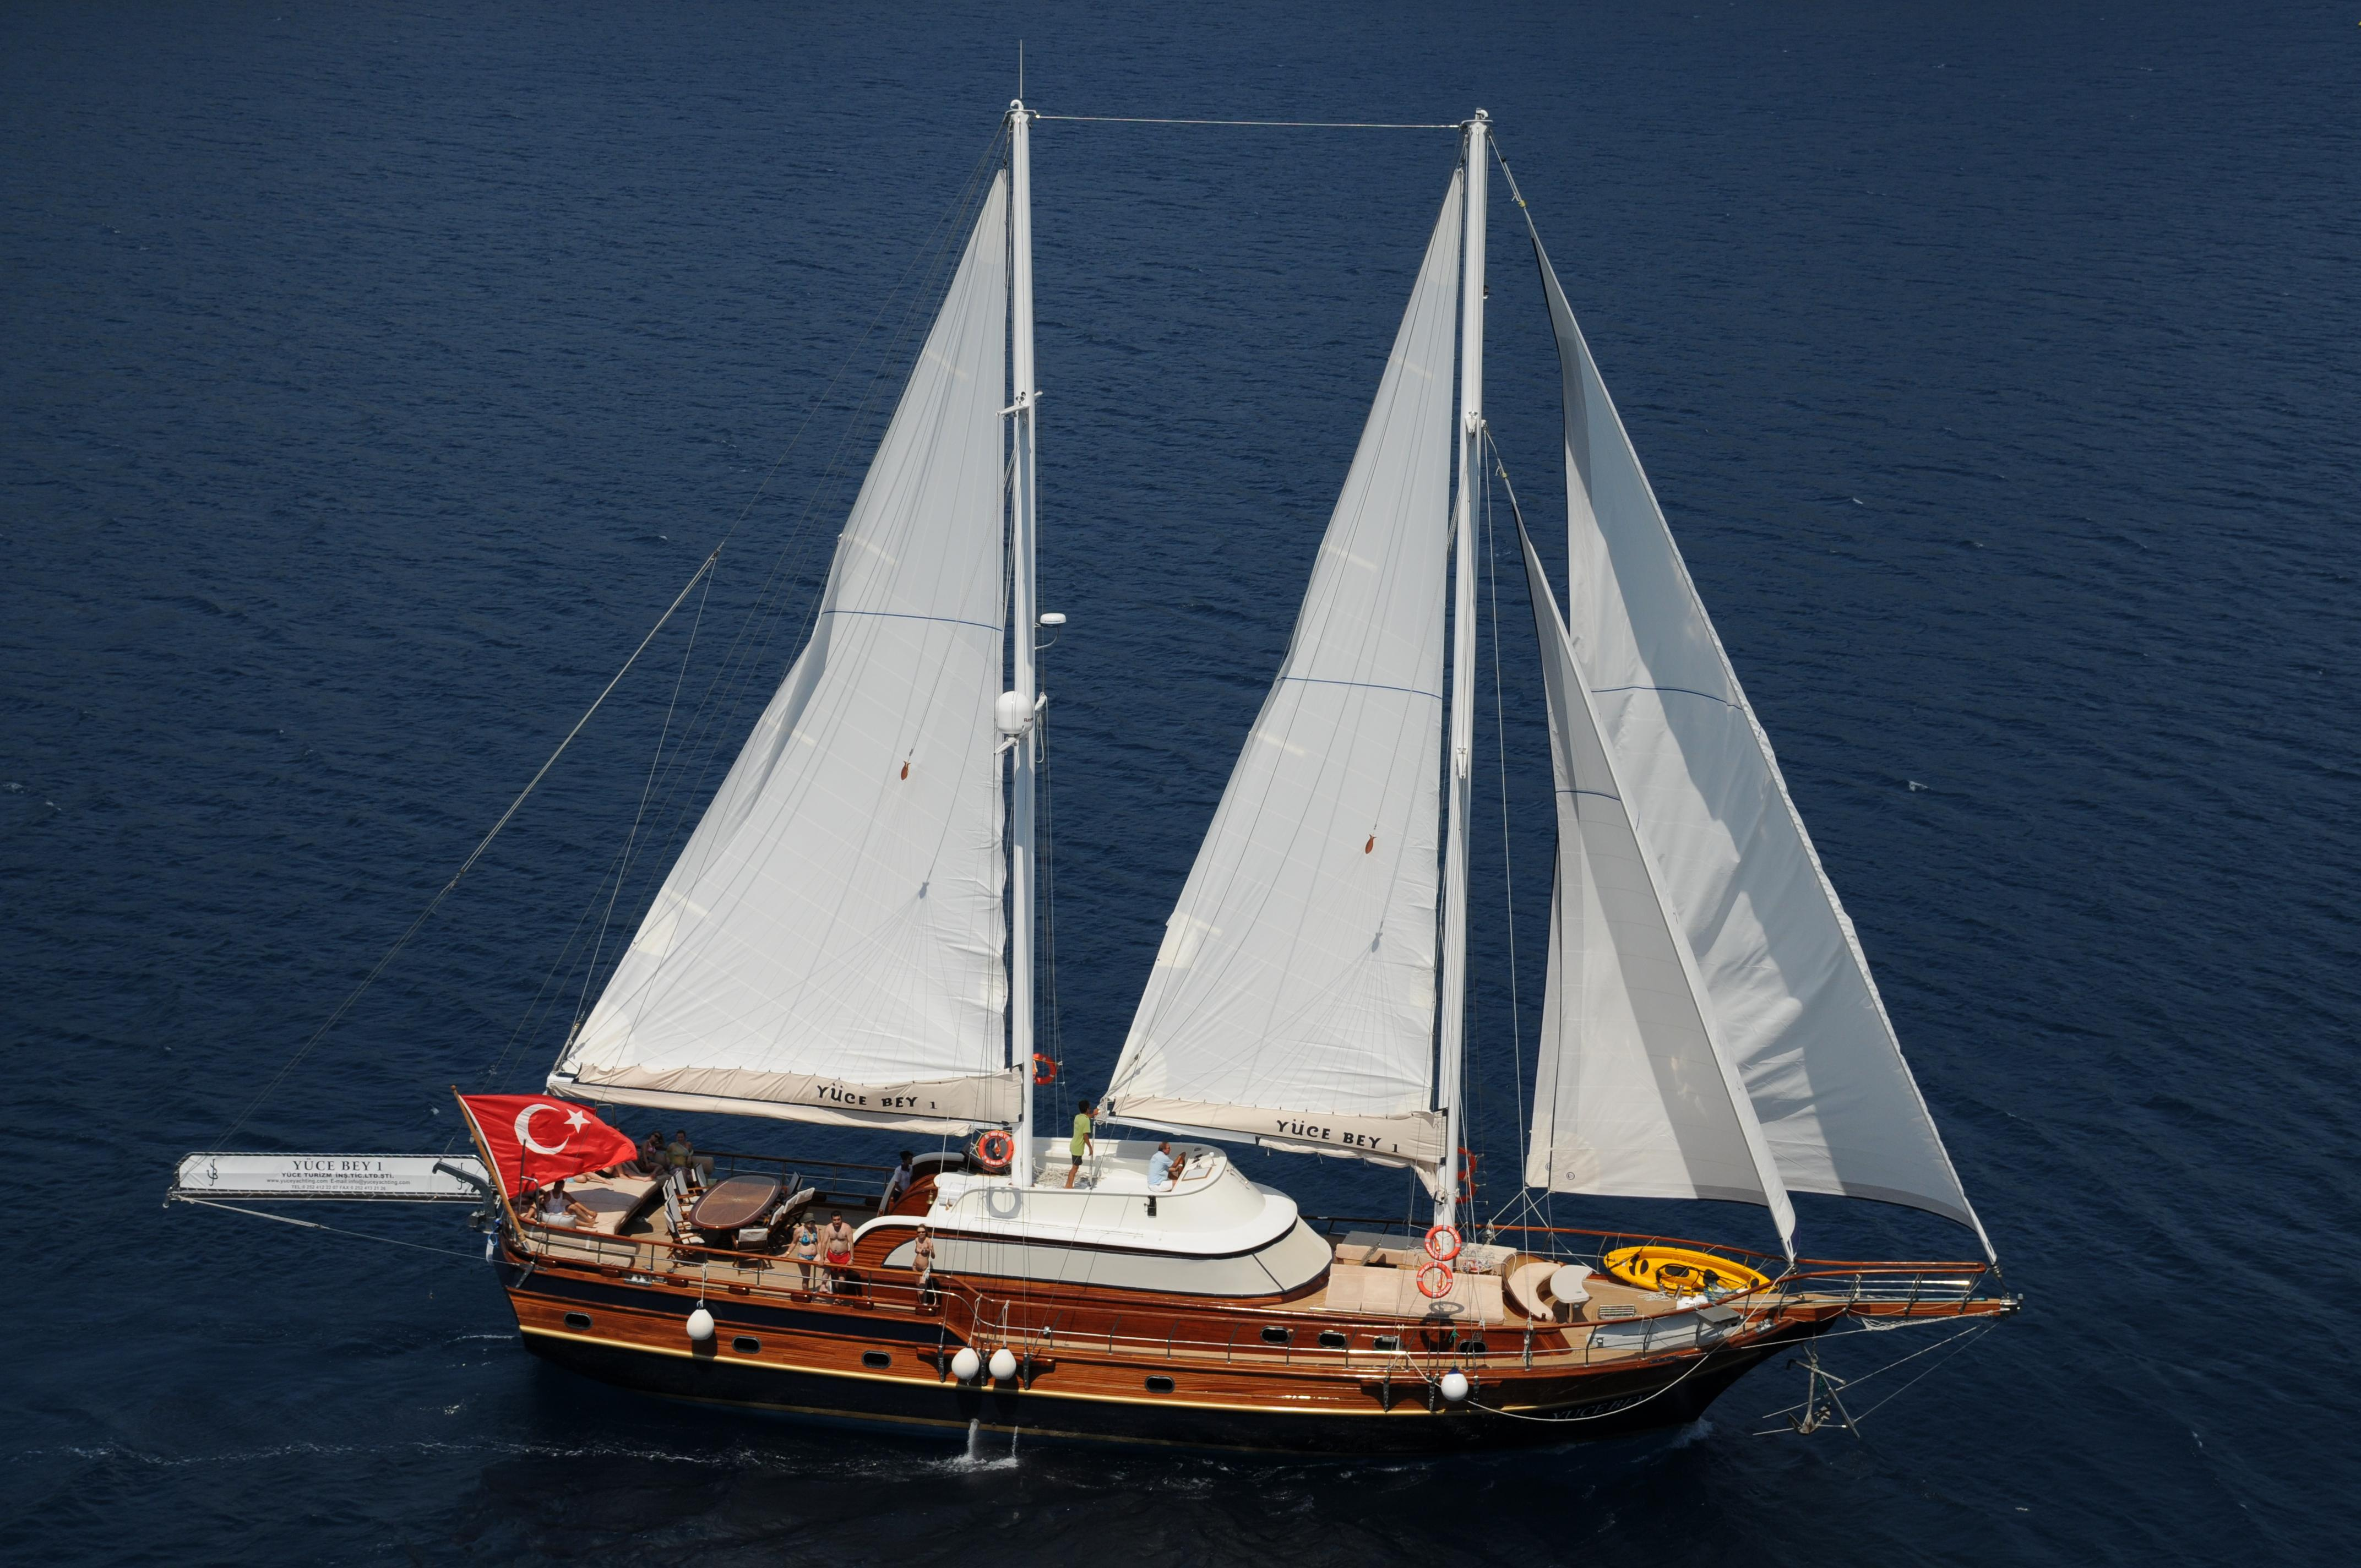 YUCEBEY I,DELUX GULETS, Yachts for Rent, Yacht Charter, Yacht Rental